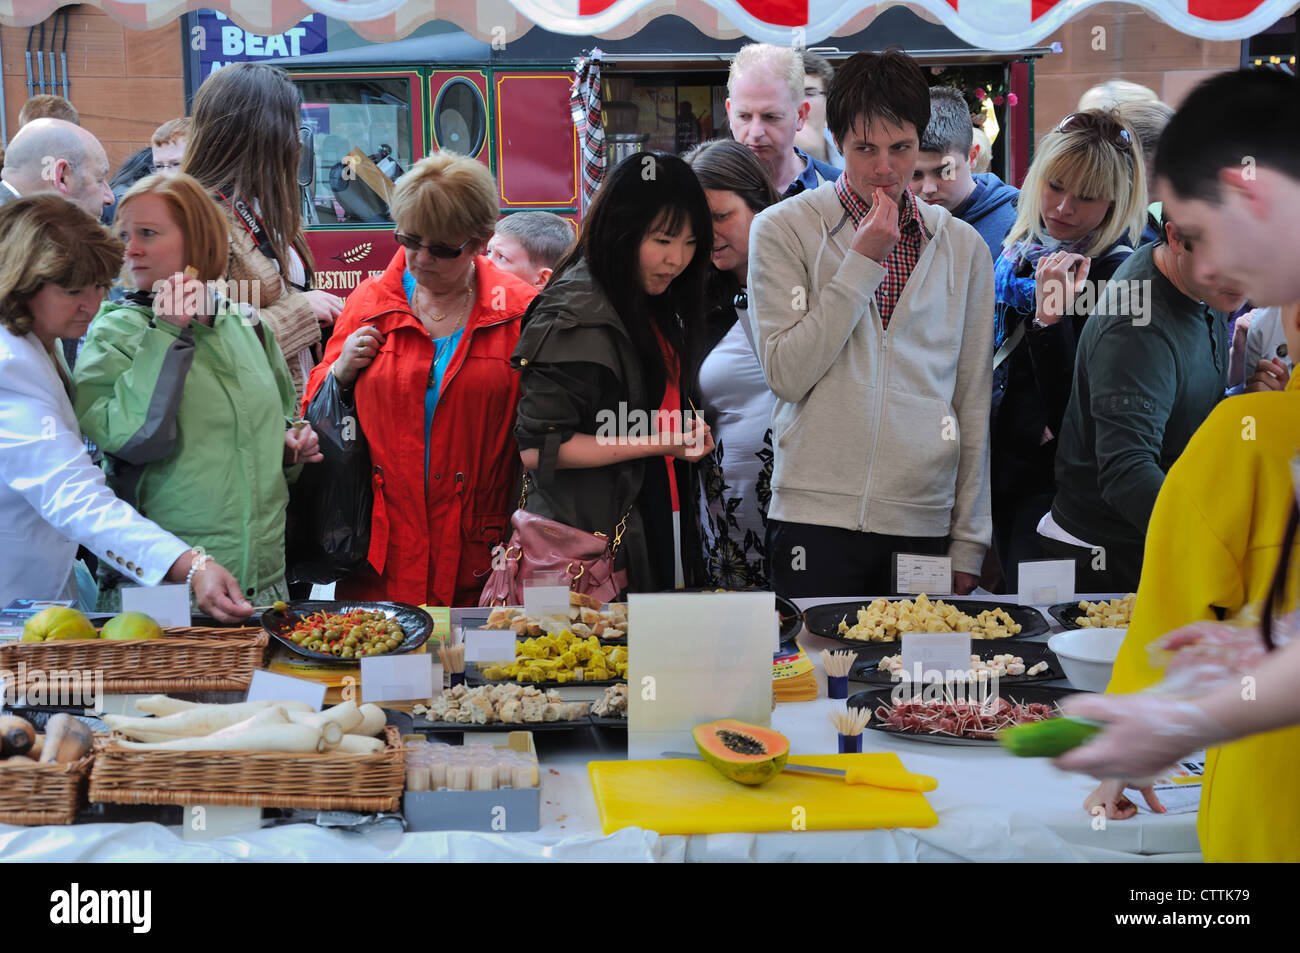 People gathered round a stall and sampling finger food at the Merchant city festival, Glasgow, Scotland, UK. - Stock Image